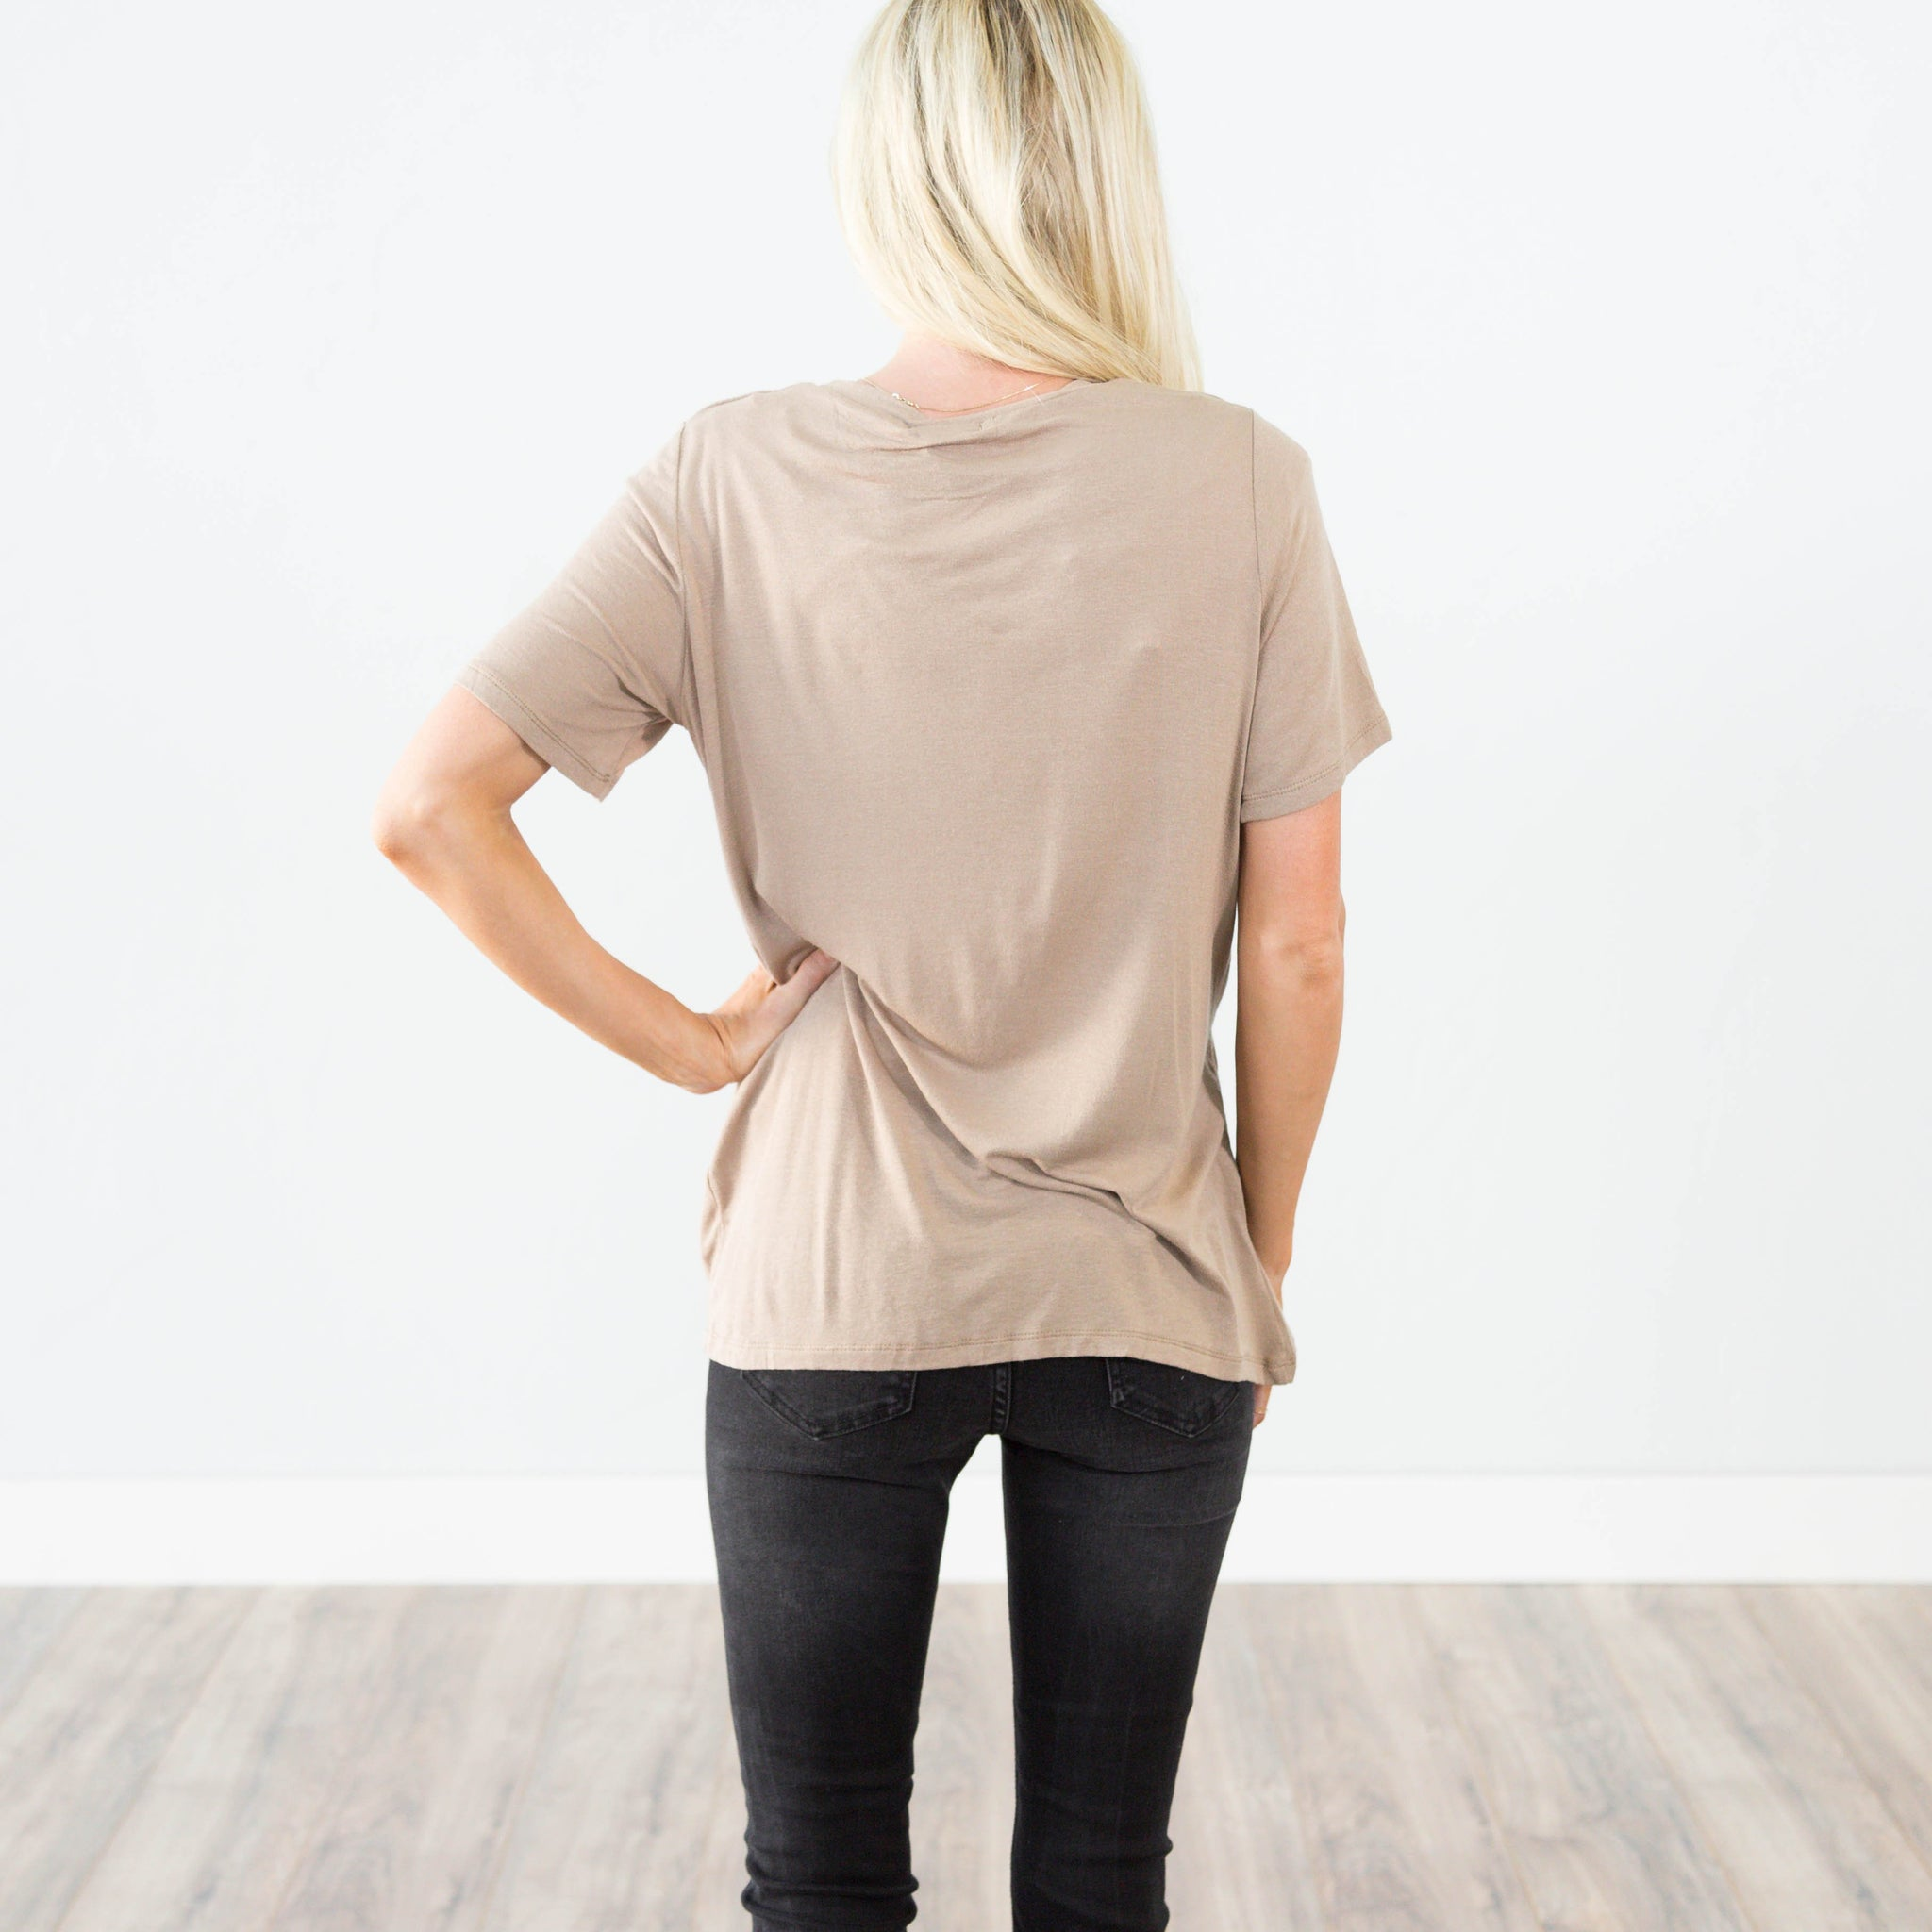 Lexie Tee in Mocha